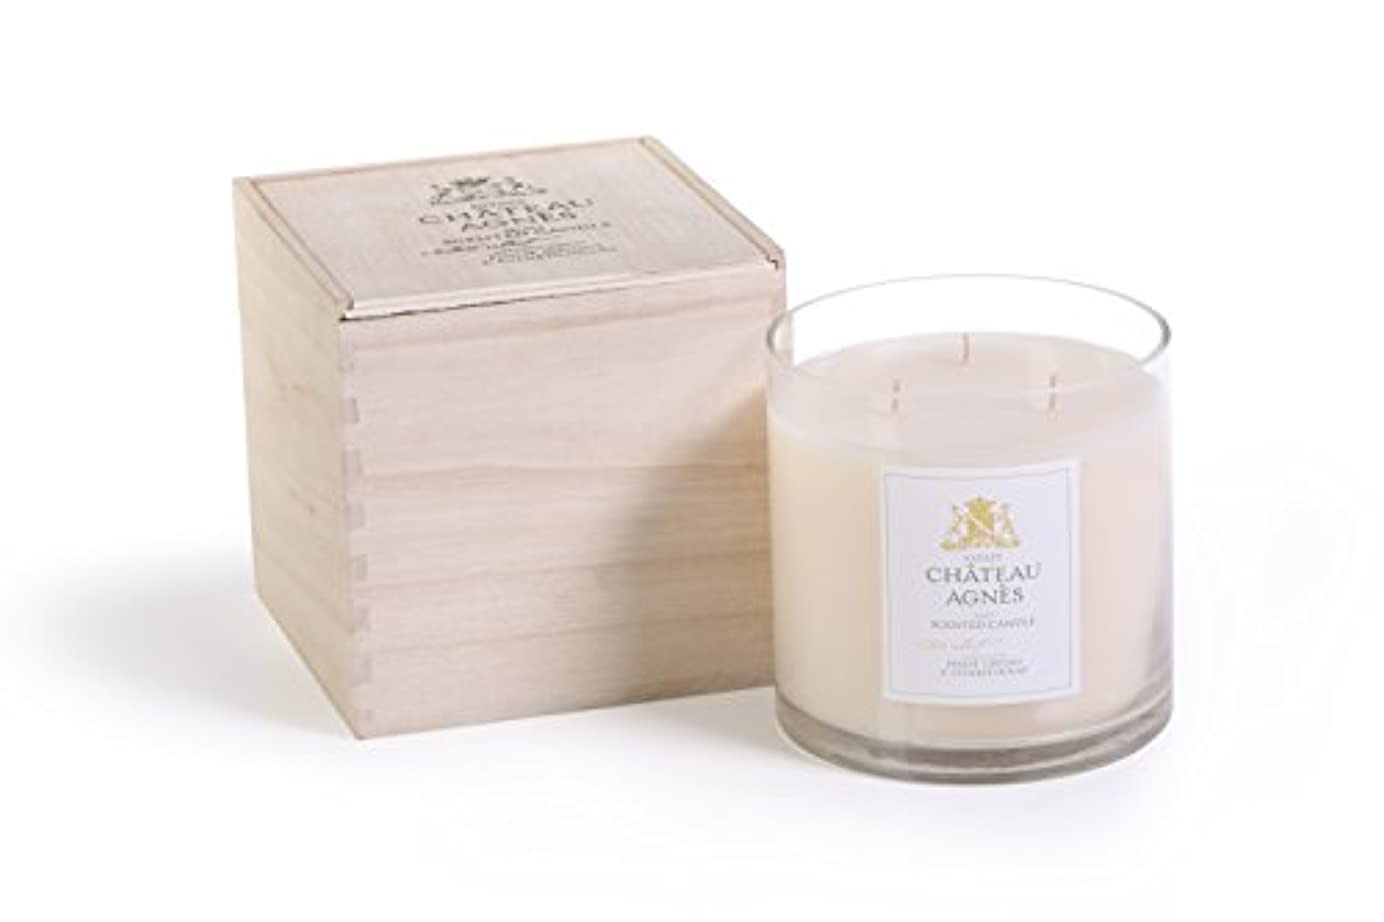 Pinot Grigio & Chardonnay Scented 3- Wick Candle Jar